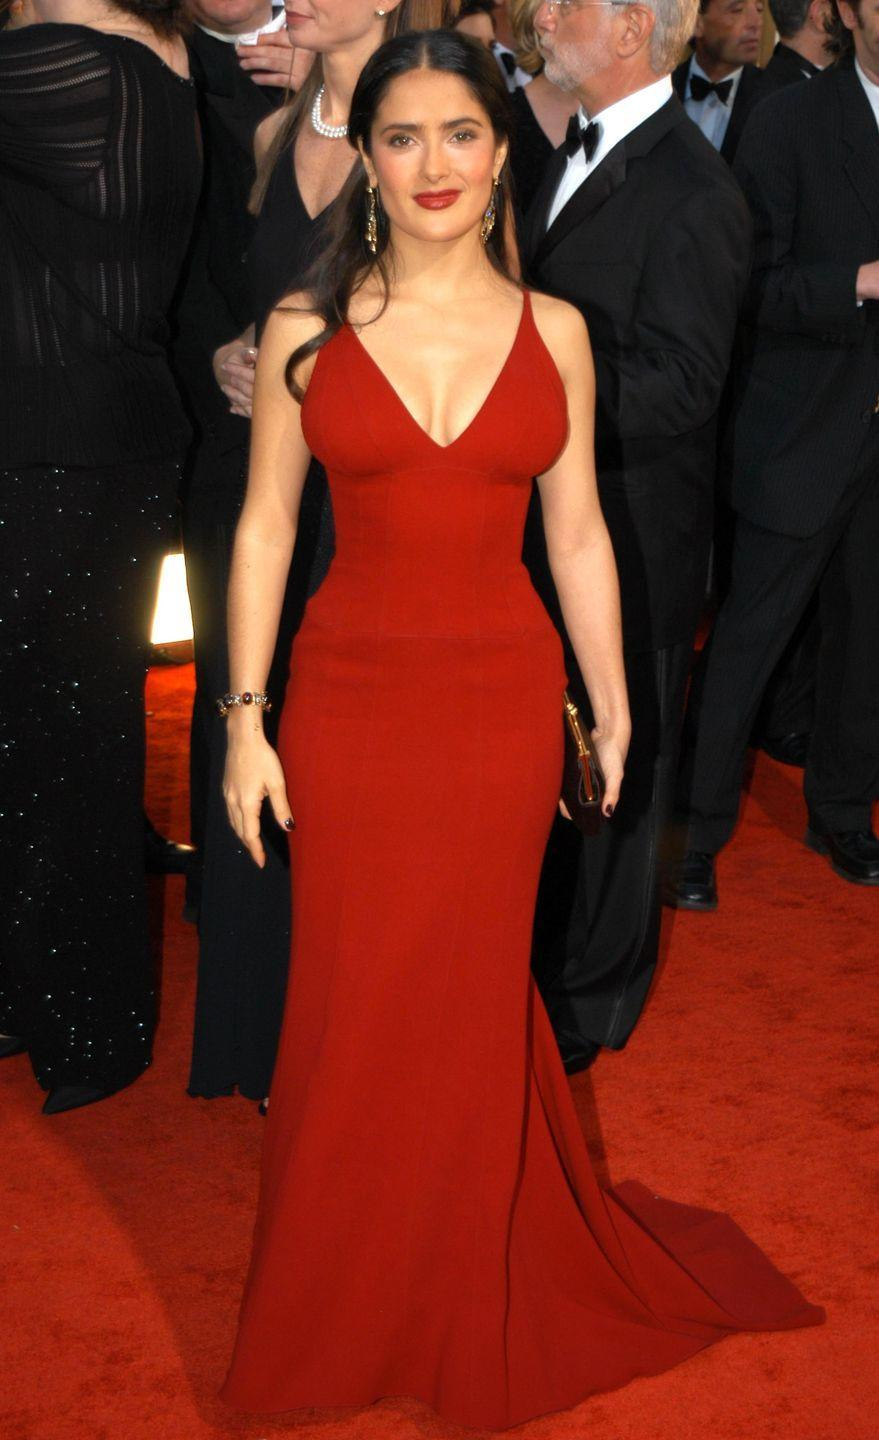 <p>Not only was a knockout in red, but Hayek's curve-hugging Narciso Rodriguez gown was one we'll never forget from the 2003 ceremony.</p>